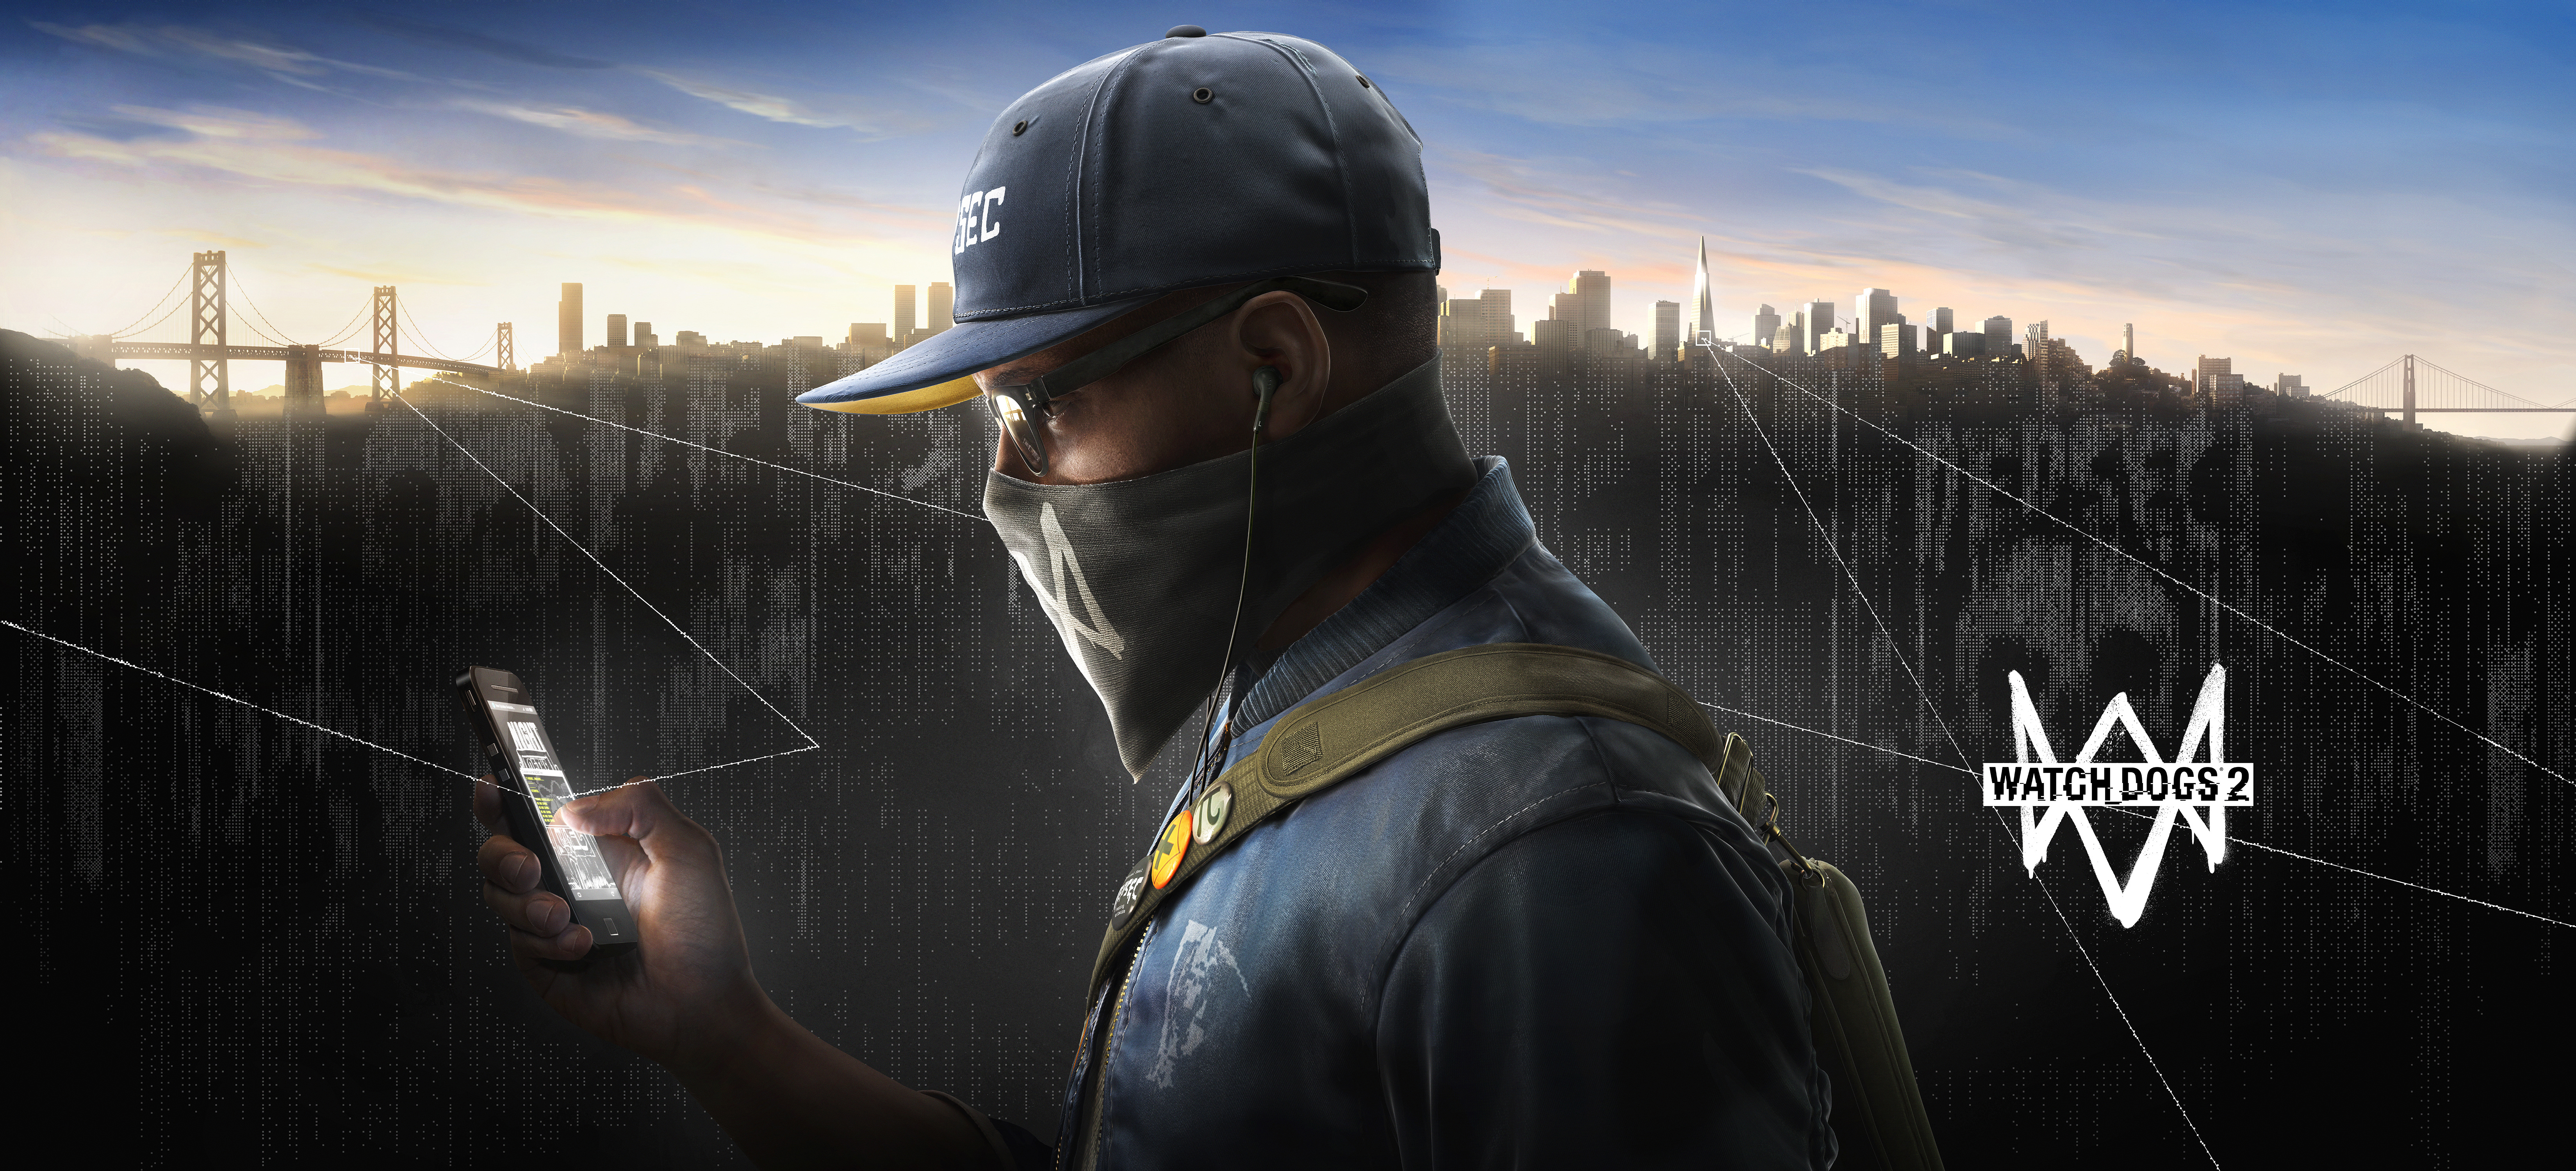 153 Watch Dogs 2 Hd Wallpapers Background Images Wallpaper Abyss